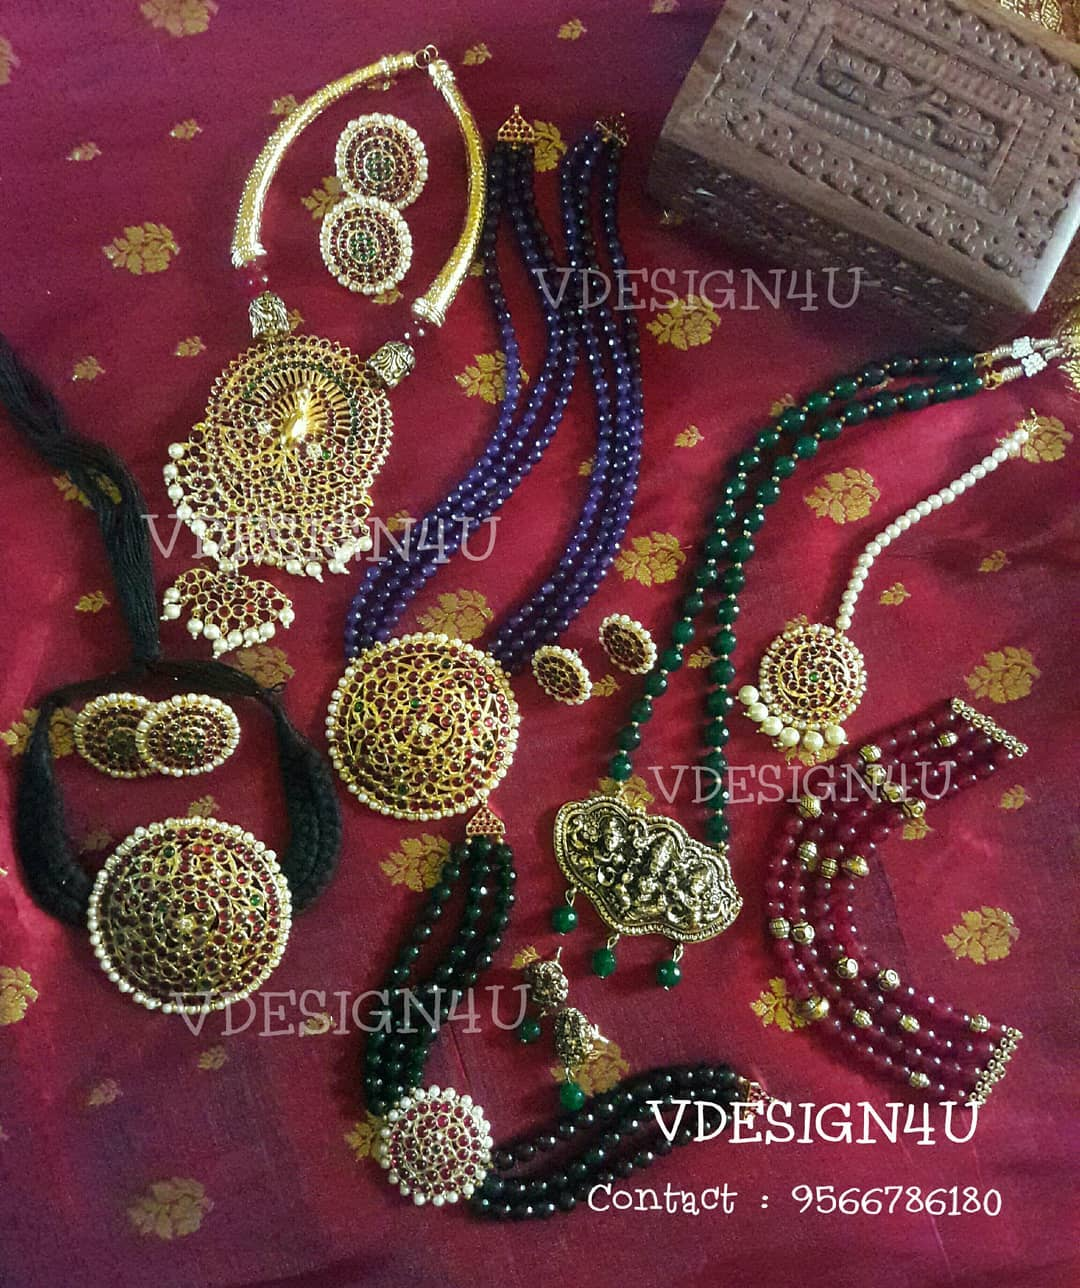 Ethnic Necklace Collections From Vdesign4u